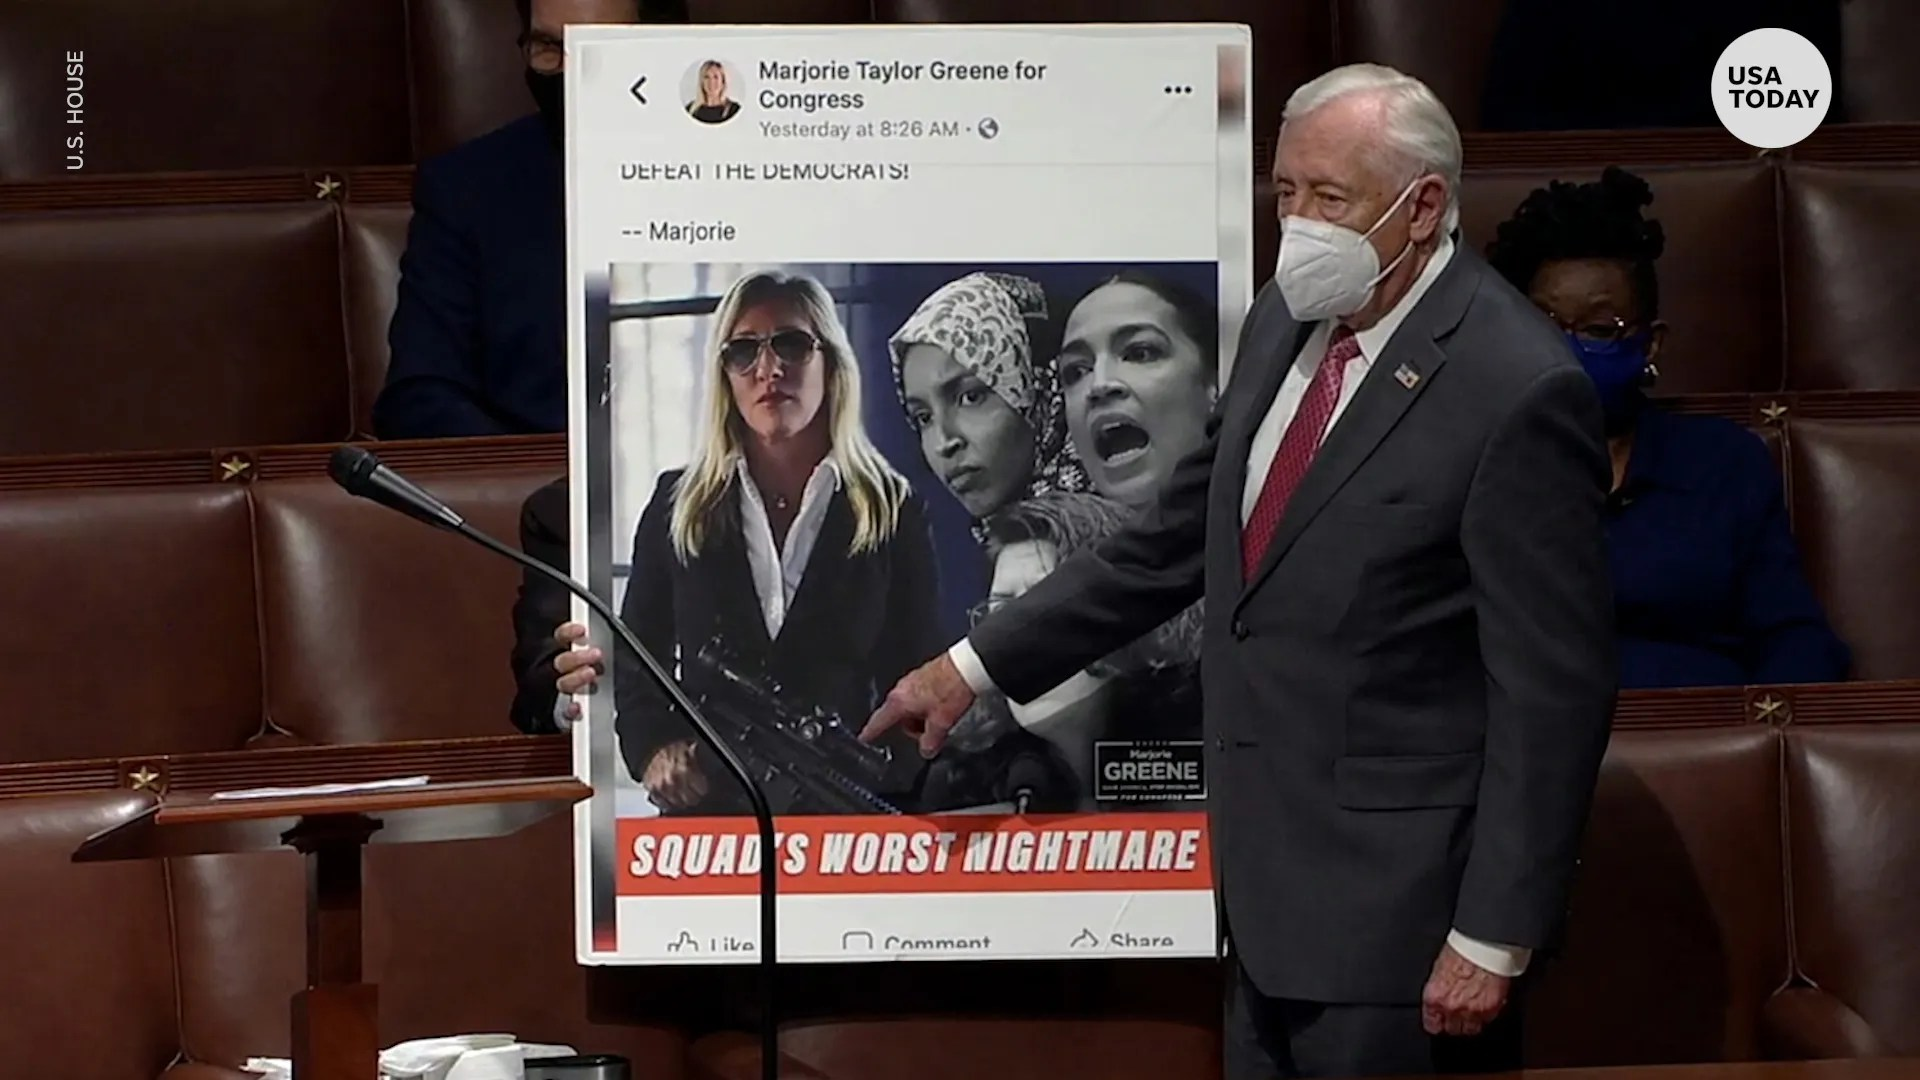 3ea5191a 6f48 422e ba1d 61feceb8e0f6 VPC REP. HOYER ON MTG DESK THUMB House removes Rep. Marjorie Taylor Greene from committees over incendiary social media posts